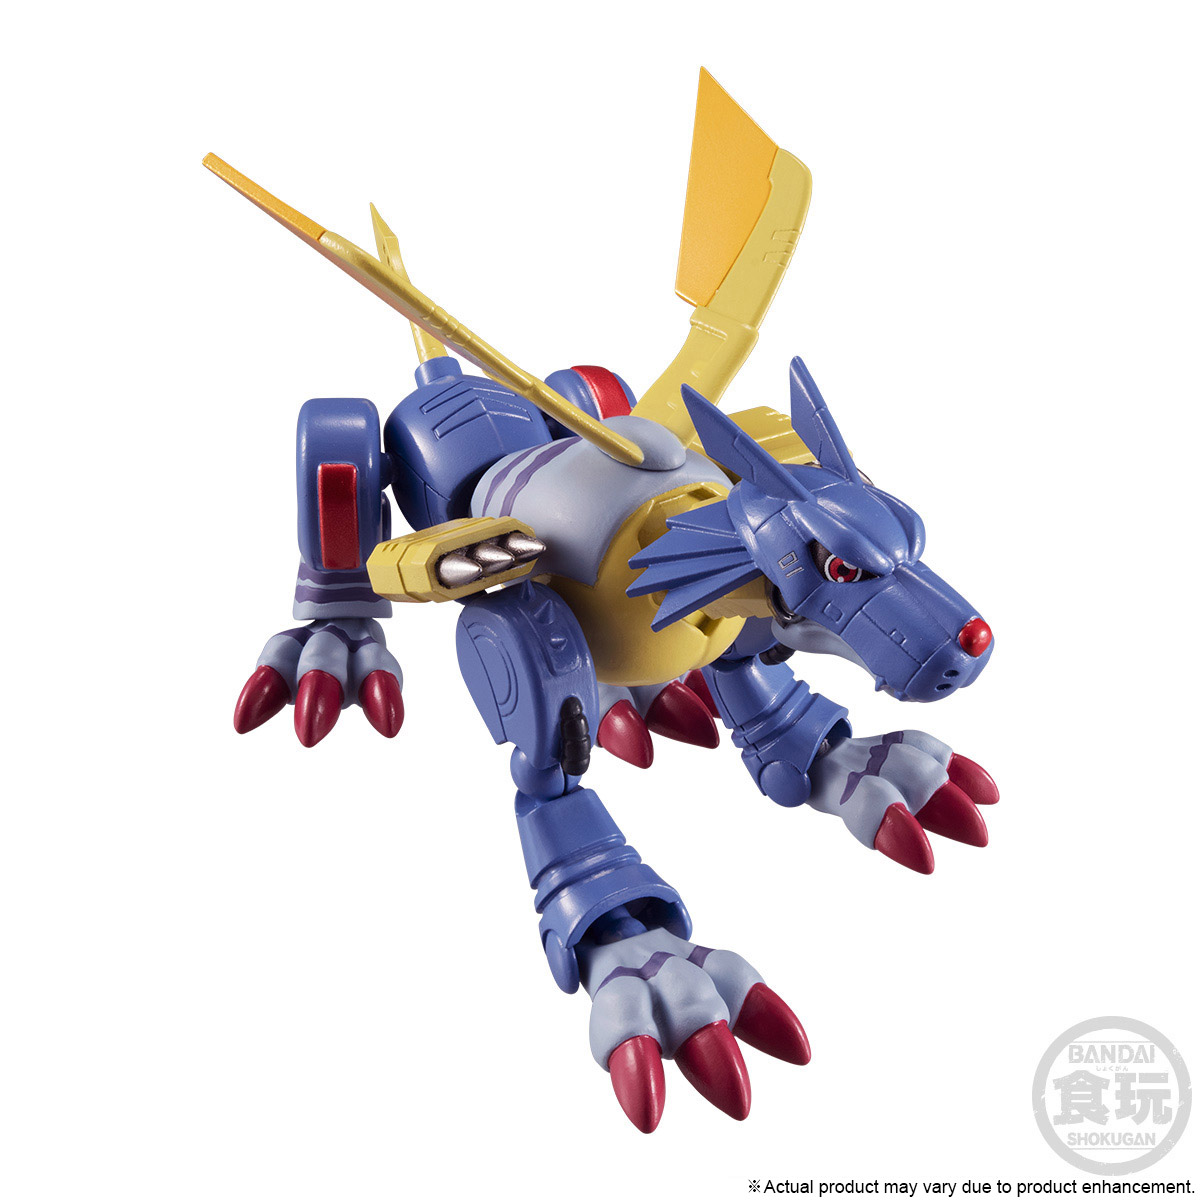 SHODO DIGIMON 2 COMPLETE SET W/O GUM [Feb 2021 Delivery]